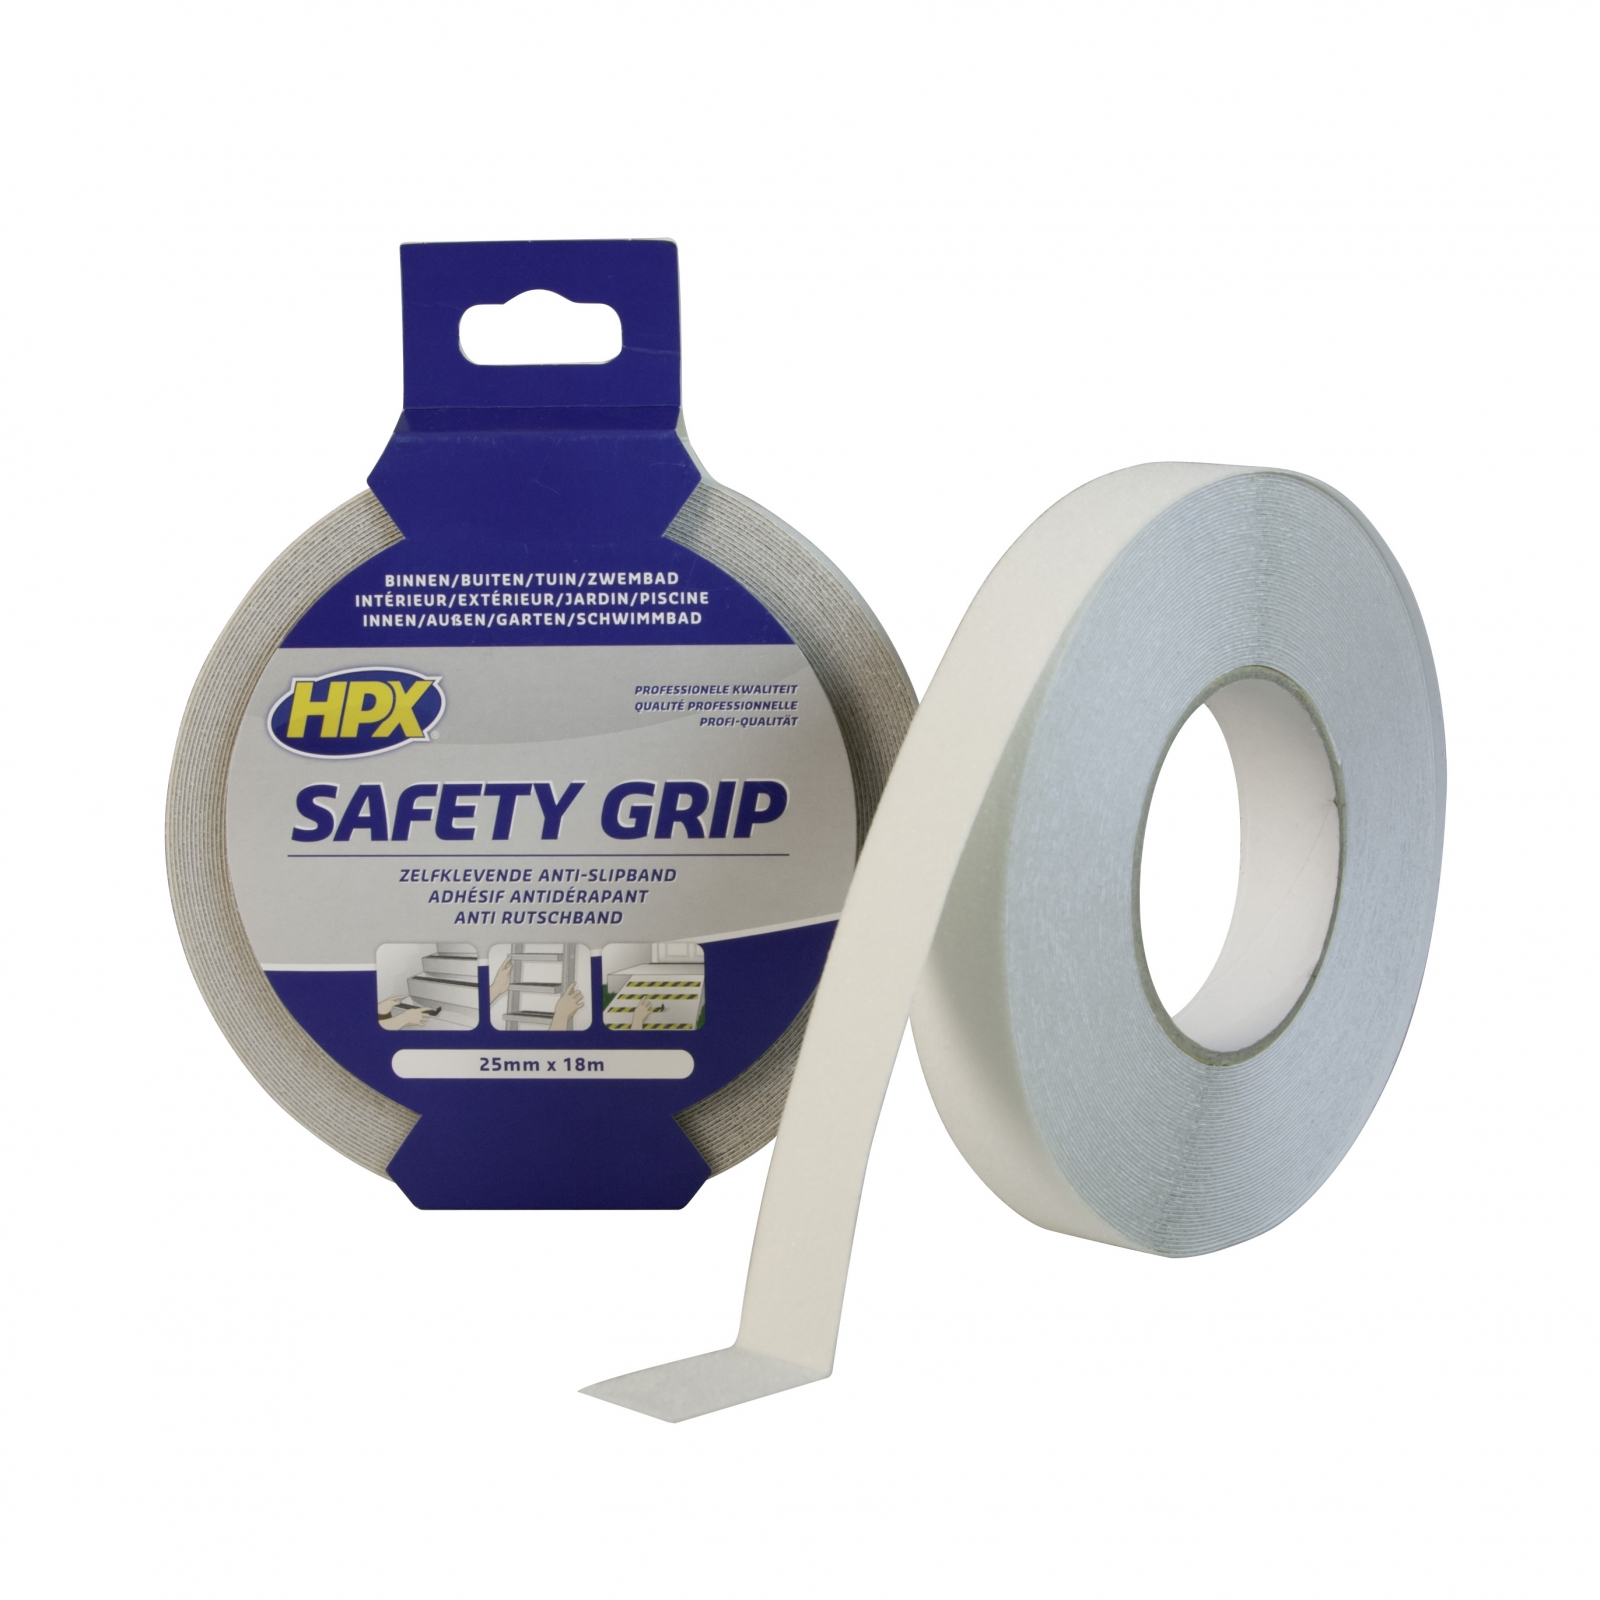 Duct Tape Zwembad Warning Tape Hpx Safety Grip 25mm X 18m Transparent Sc2518 To